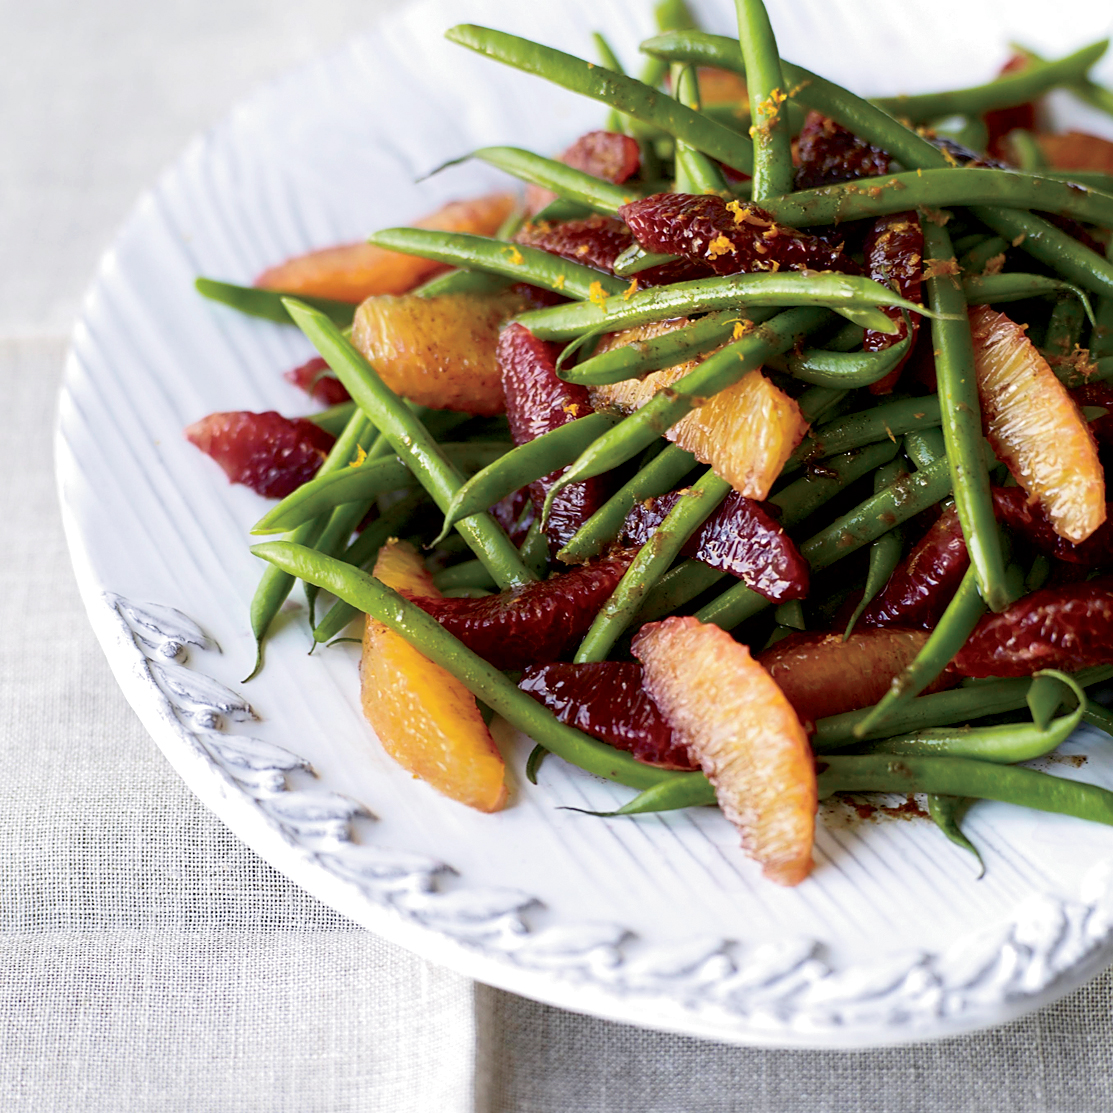 Best Holiday Recipes: 10 Fast Holiday Sides: Green Bean-and-Blood Orange Salad